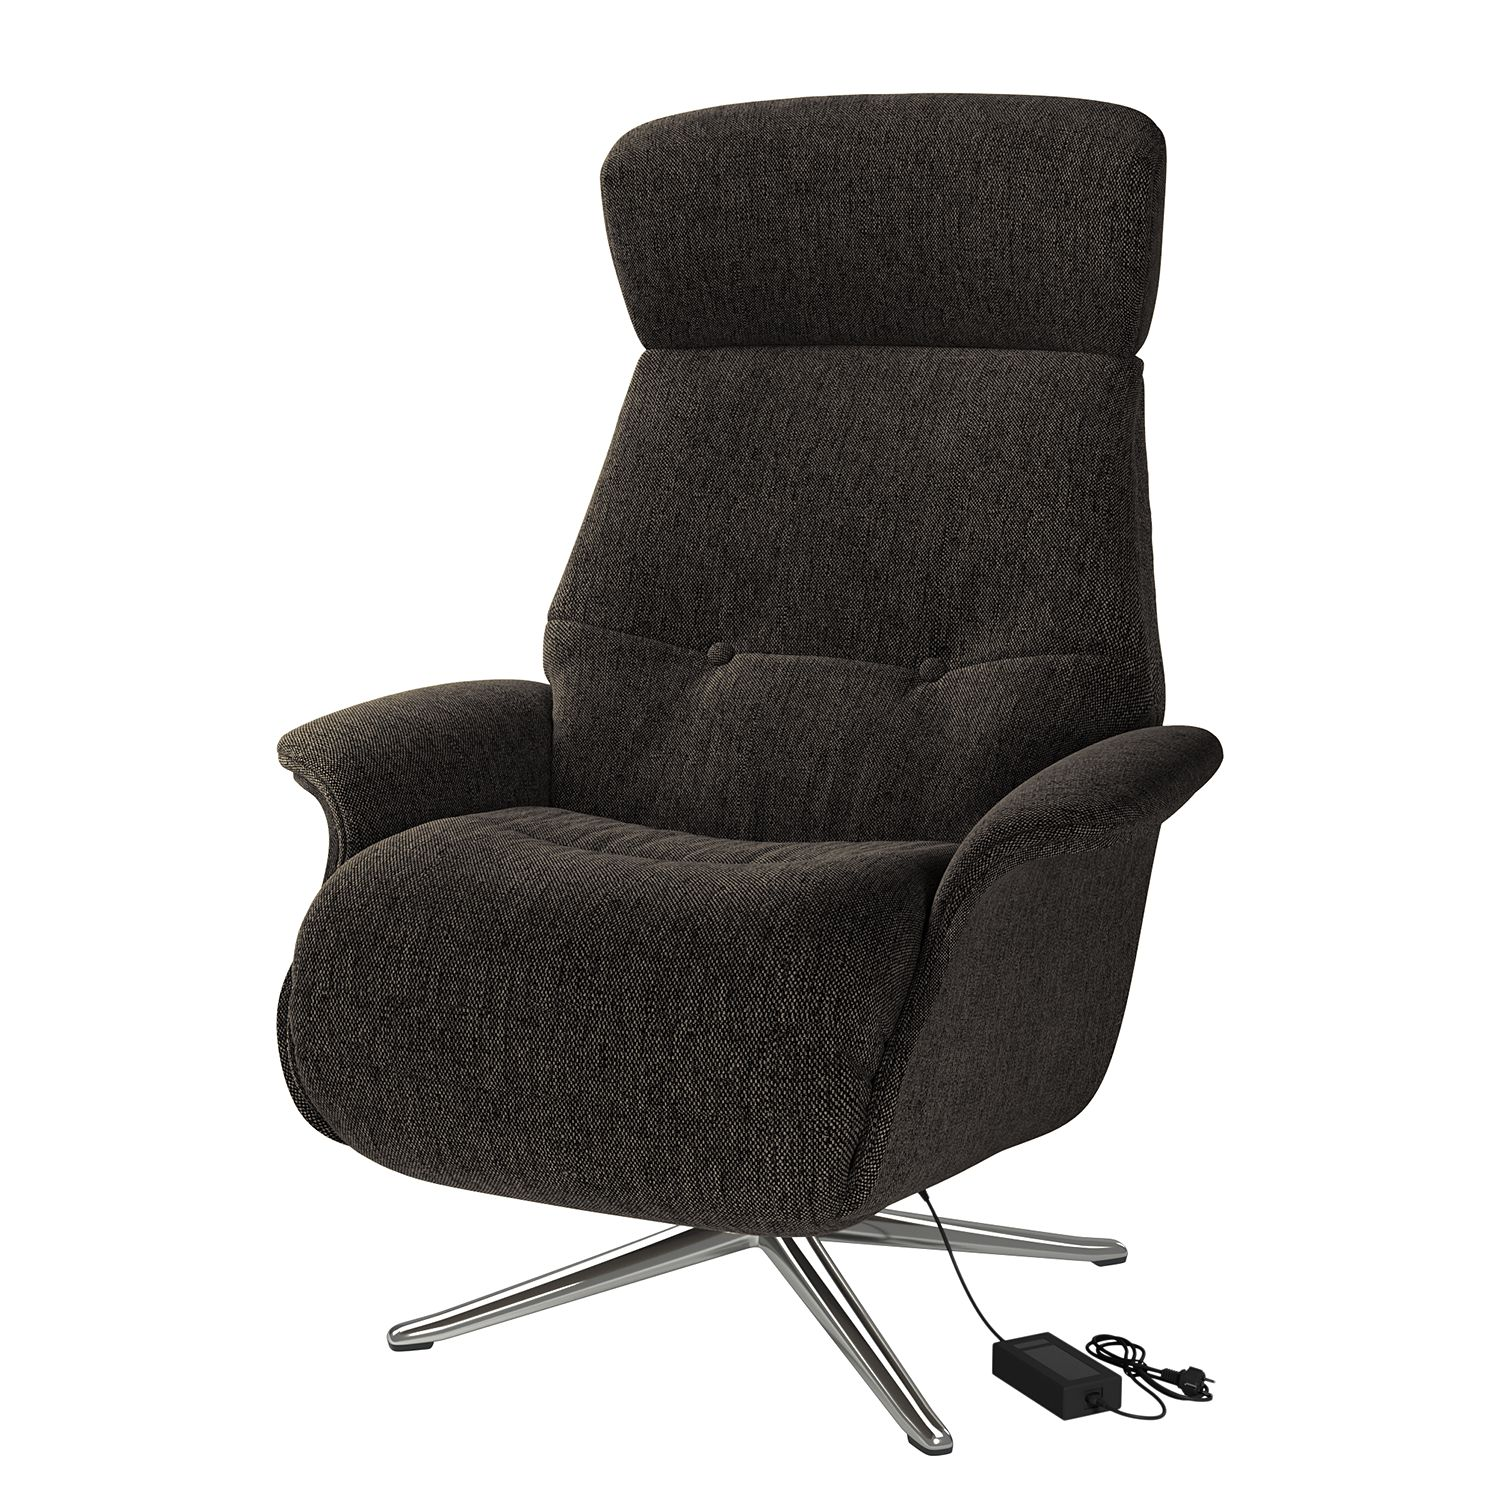 Fauteuil relax Anderson III